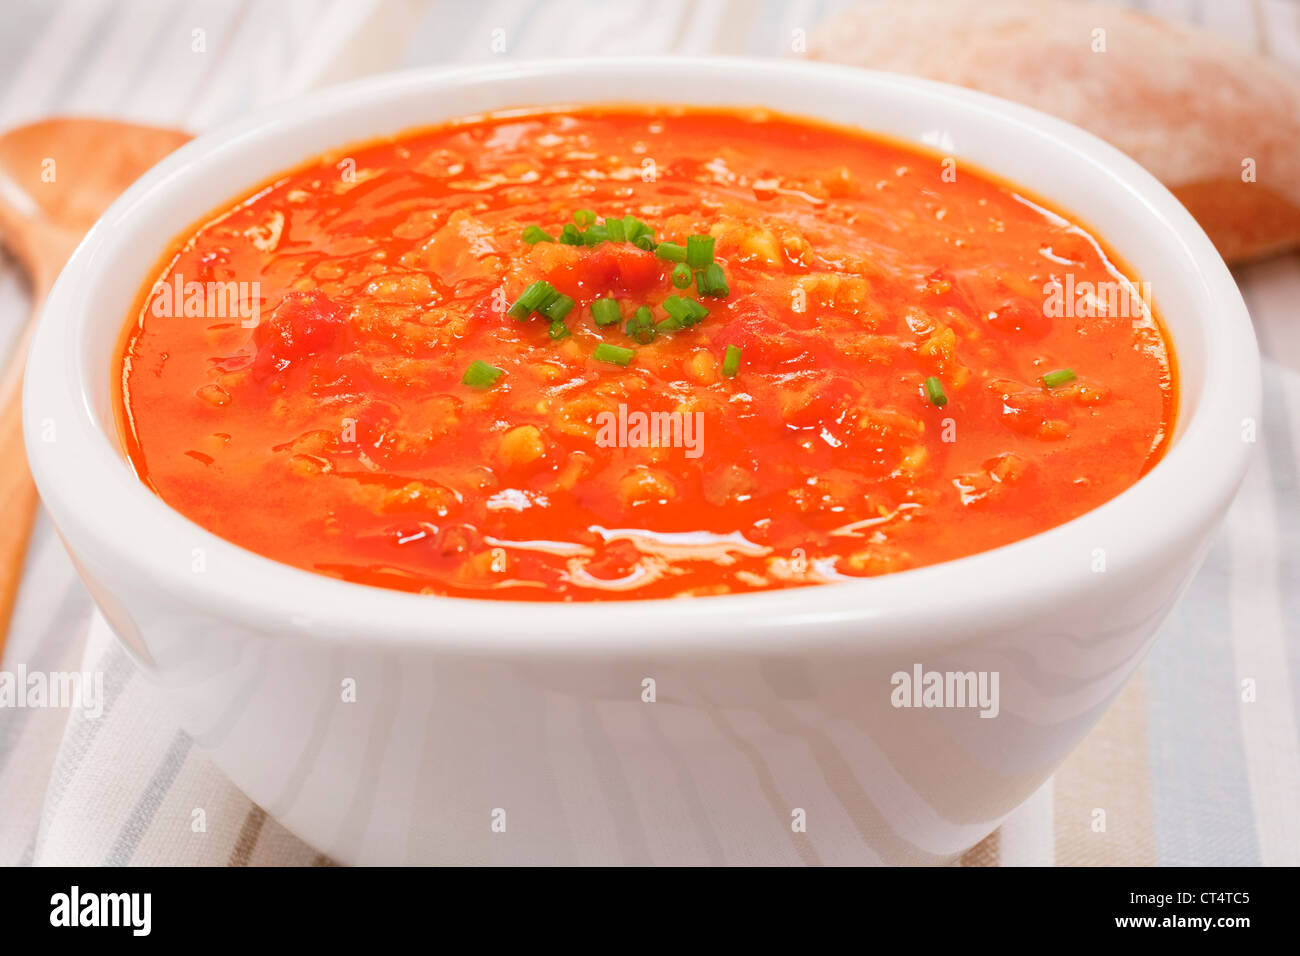 A bowl of lentil and tomato soup garmished with chives. - Stock Image